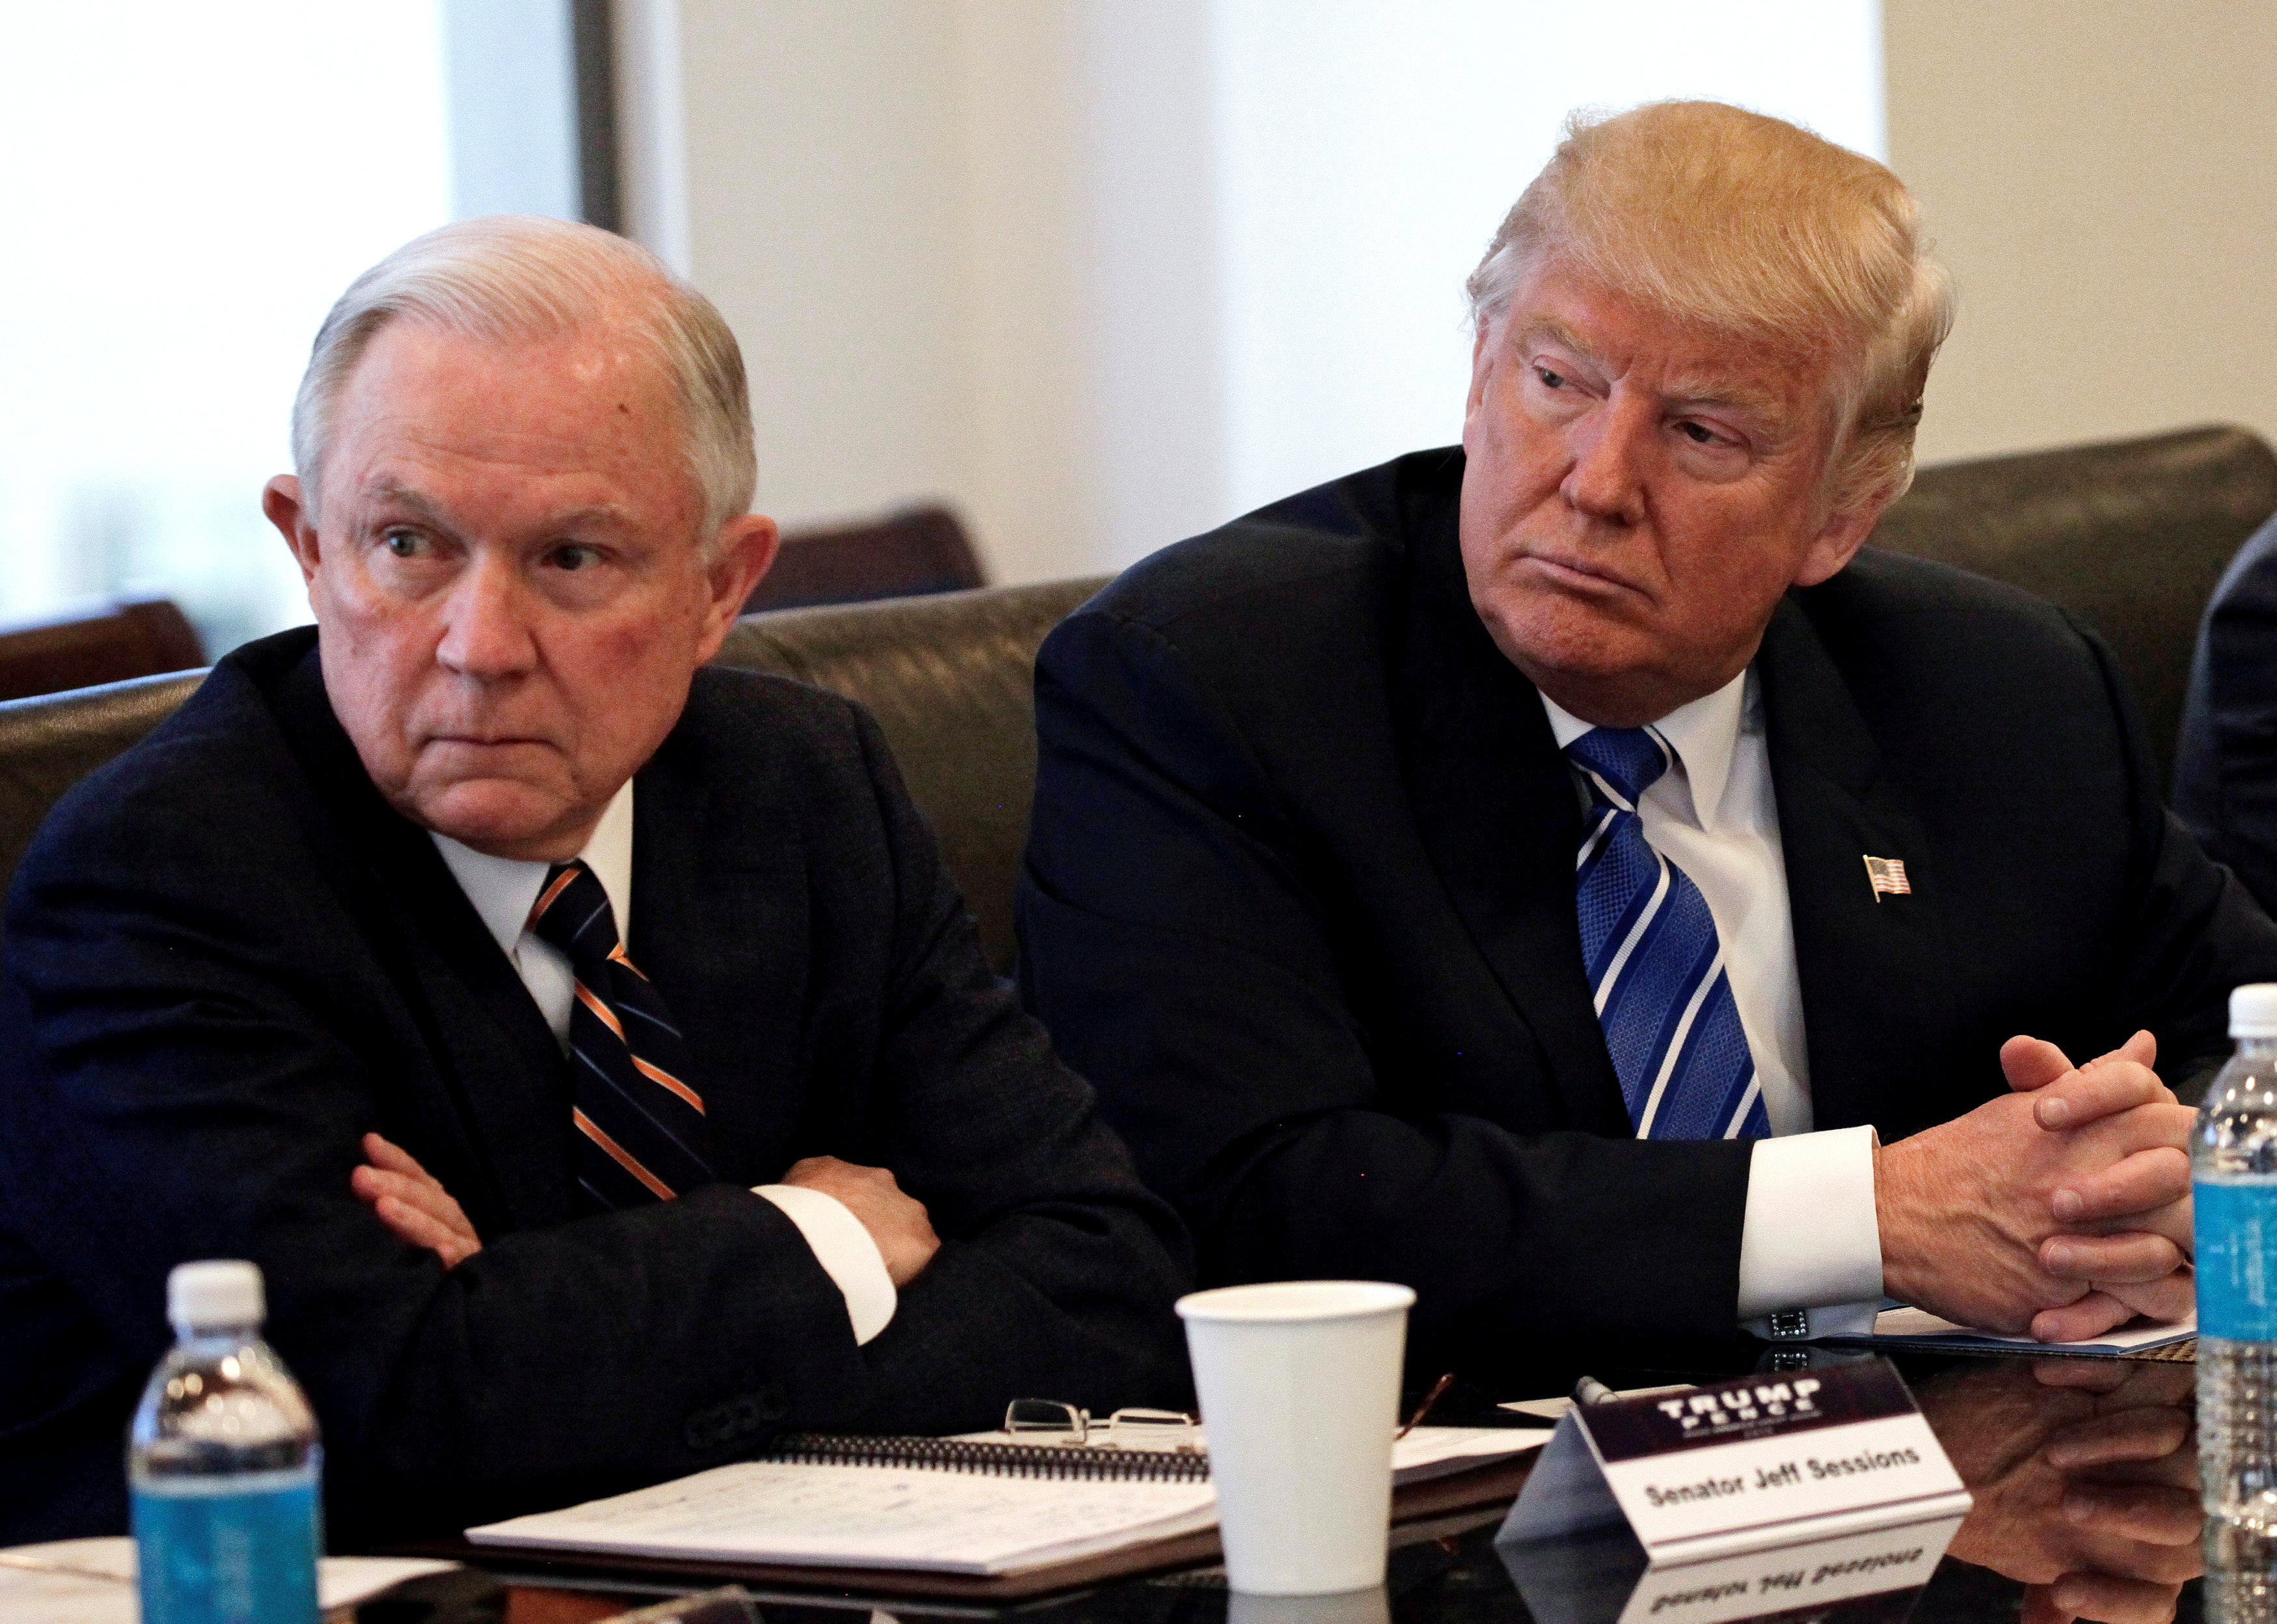 dailycallercom Reports Trump discussing firing Attorney General